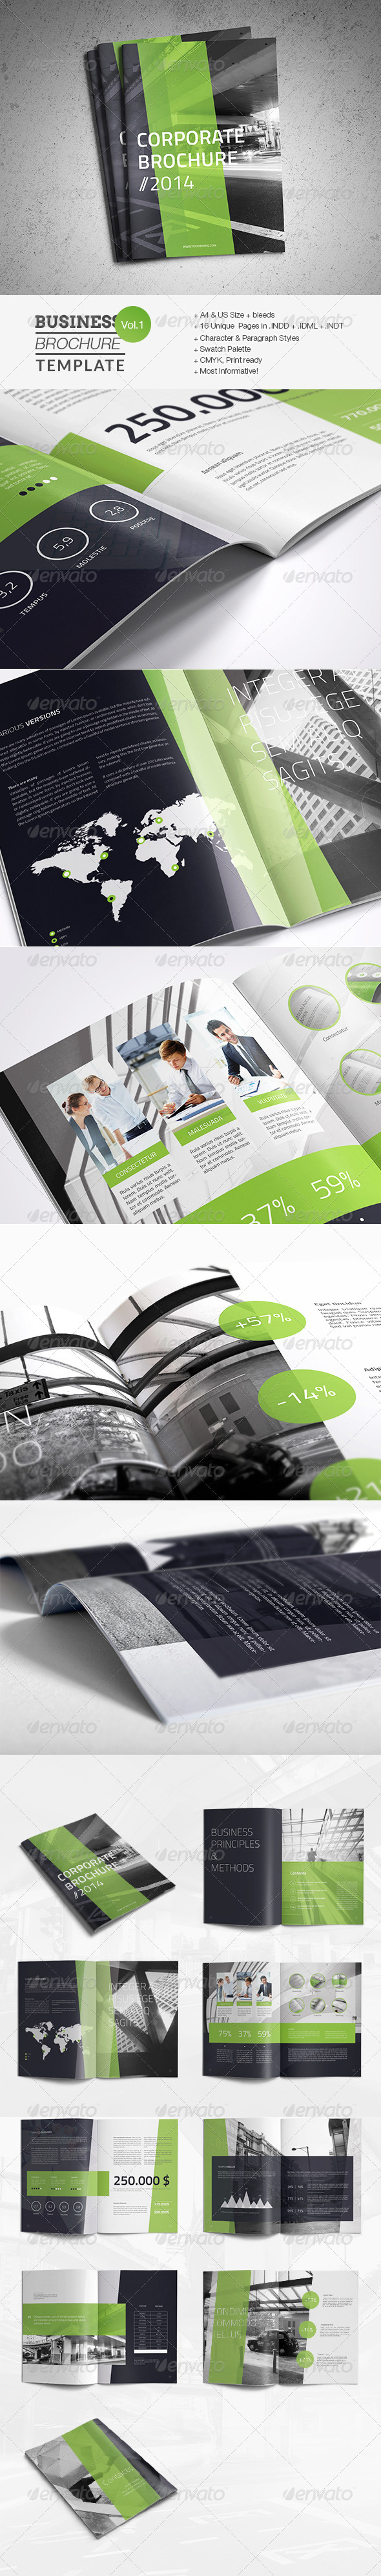 GraphicRiver Business Brochure Template 7535741